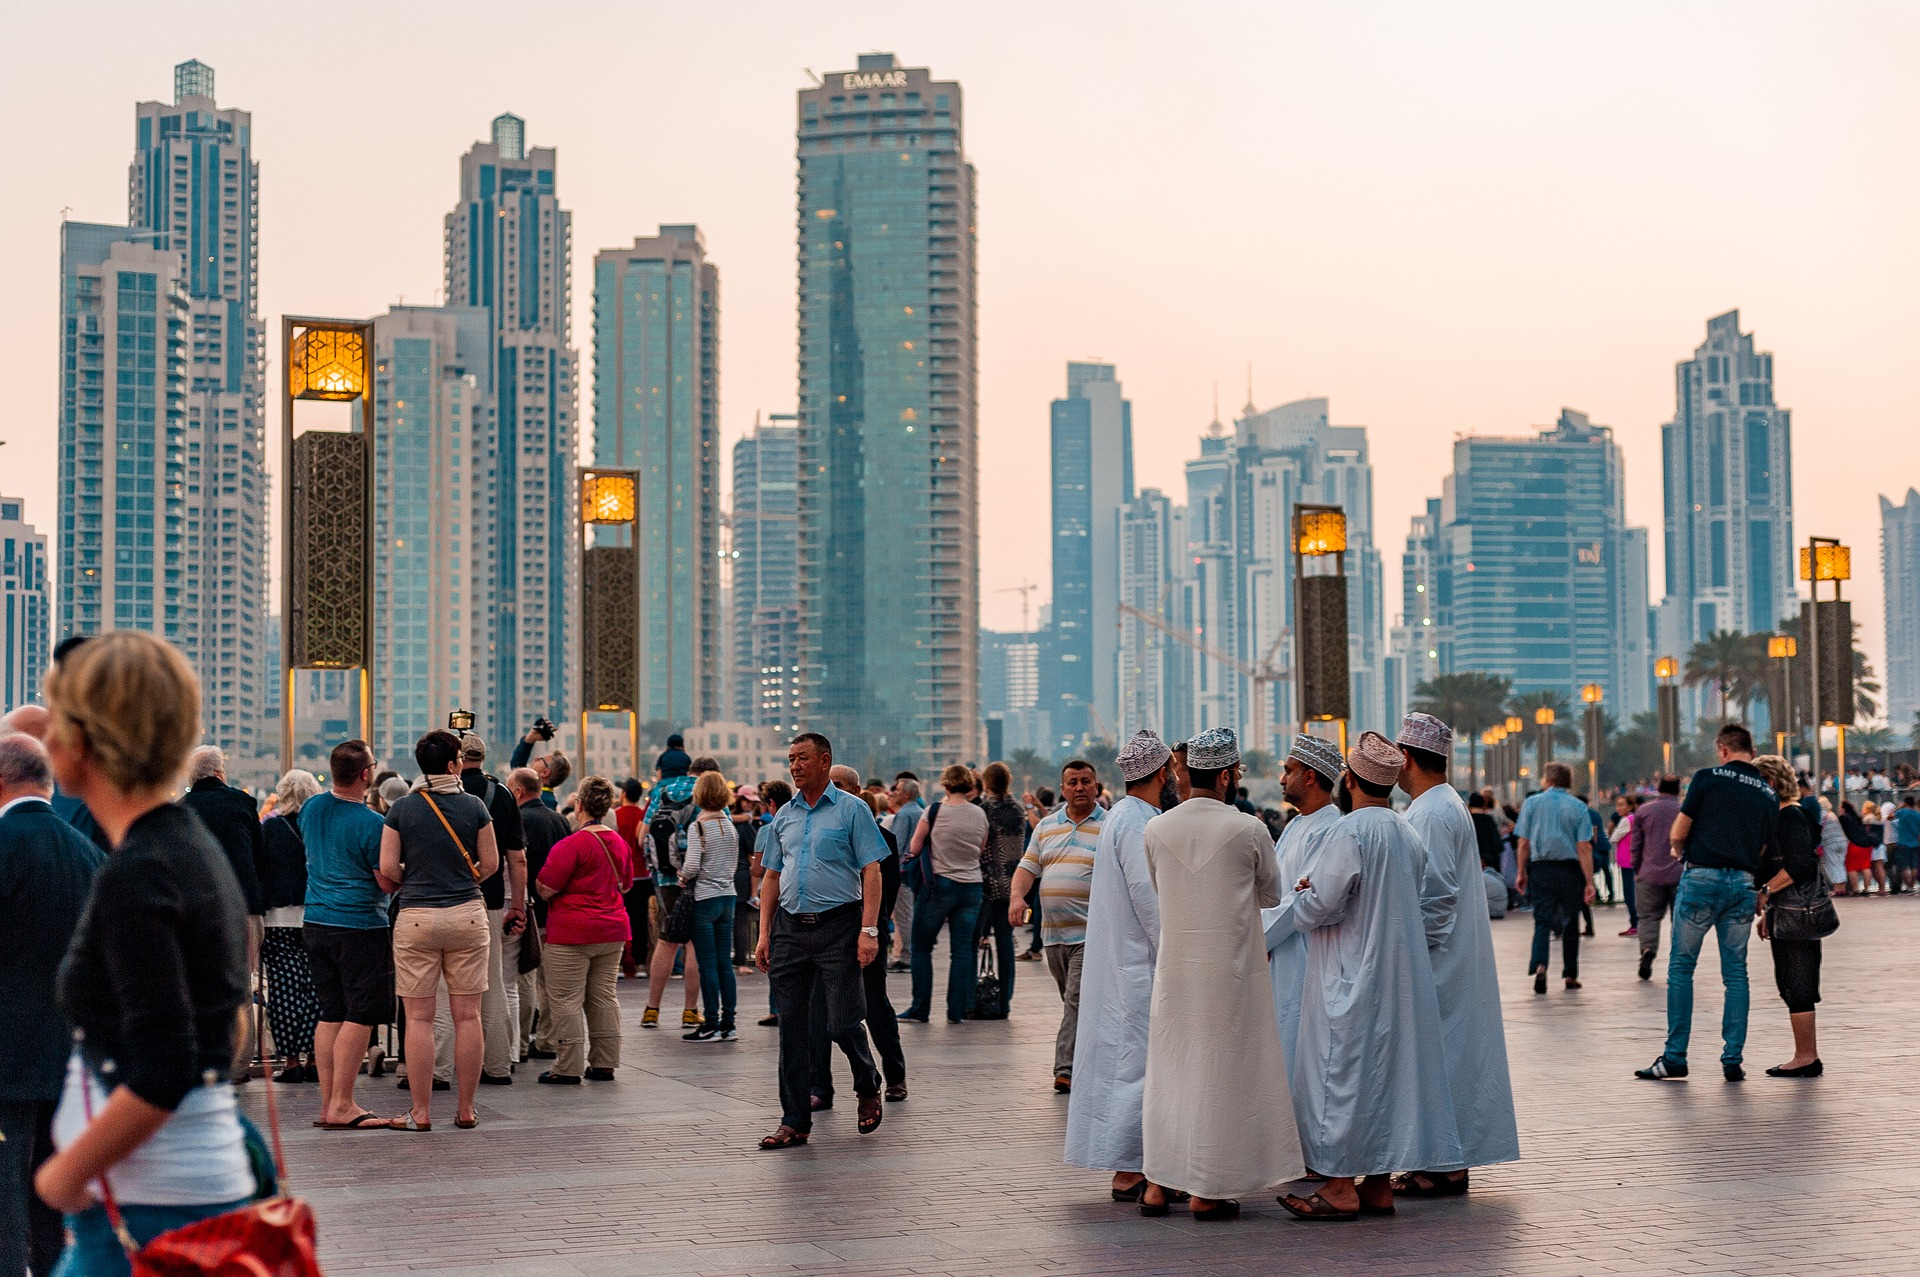 Photograph of people in Dubai